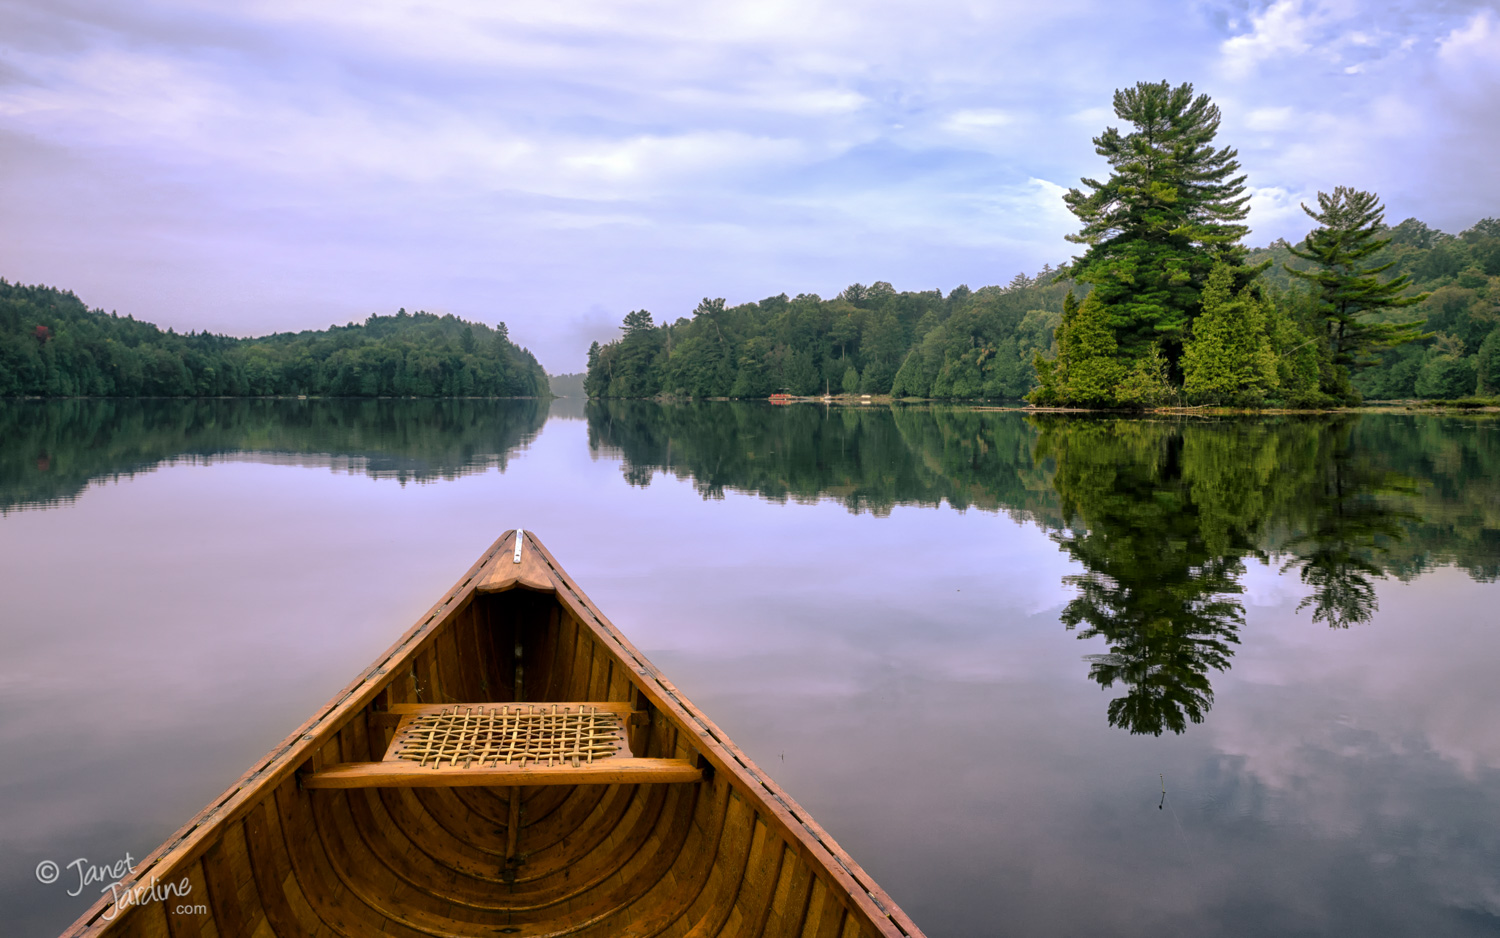 Tranquil-Morning-Paddle_Photo_copyright_Janet_Jardine_SquareSpace.jpg